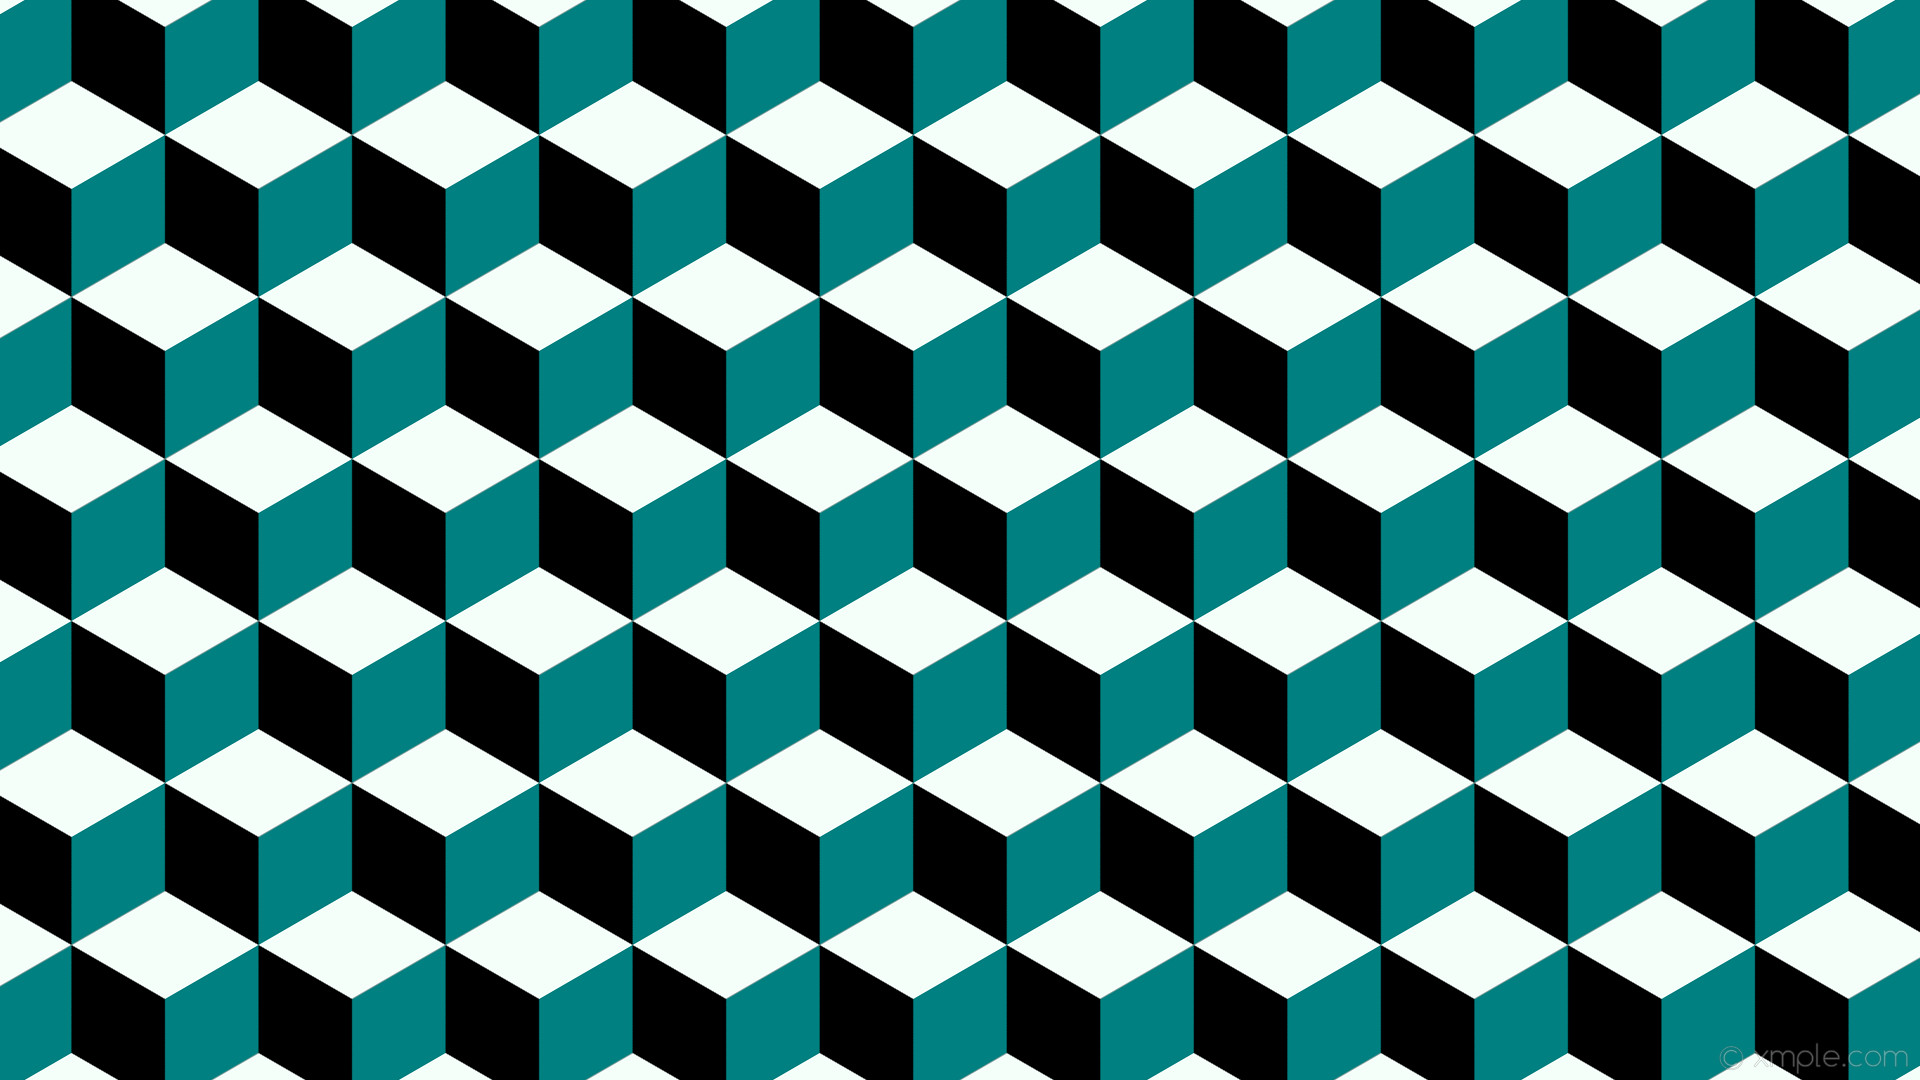 1920x1080 wallpaper white 3d cubes green black teal mint cream #000000 #008080  #f5fffa 120